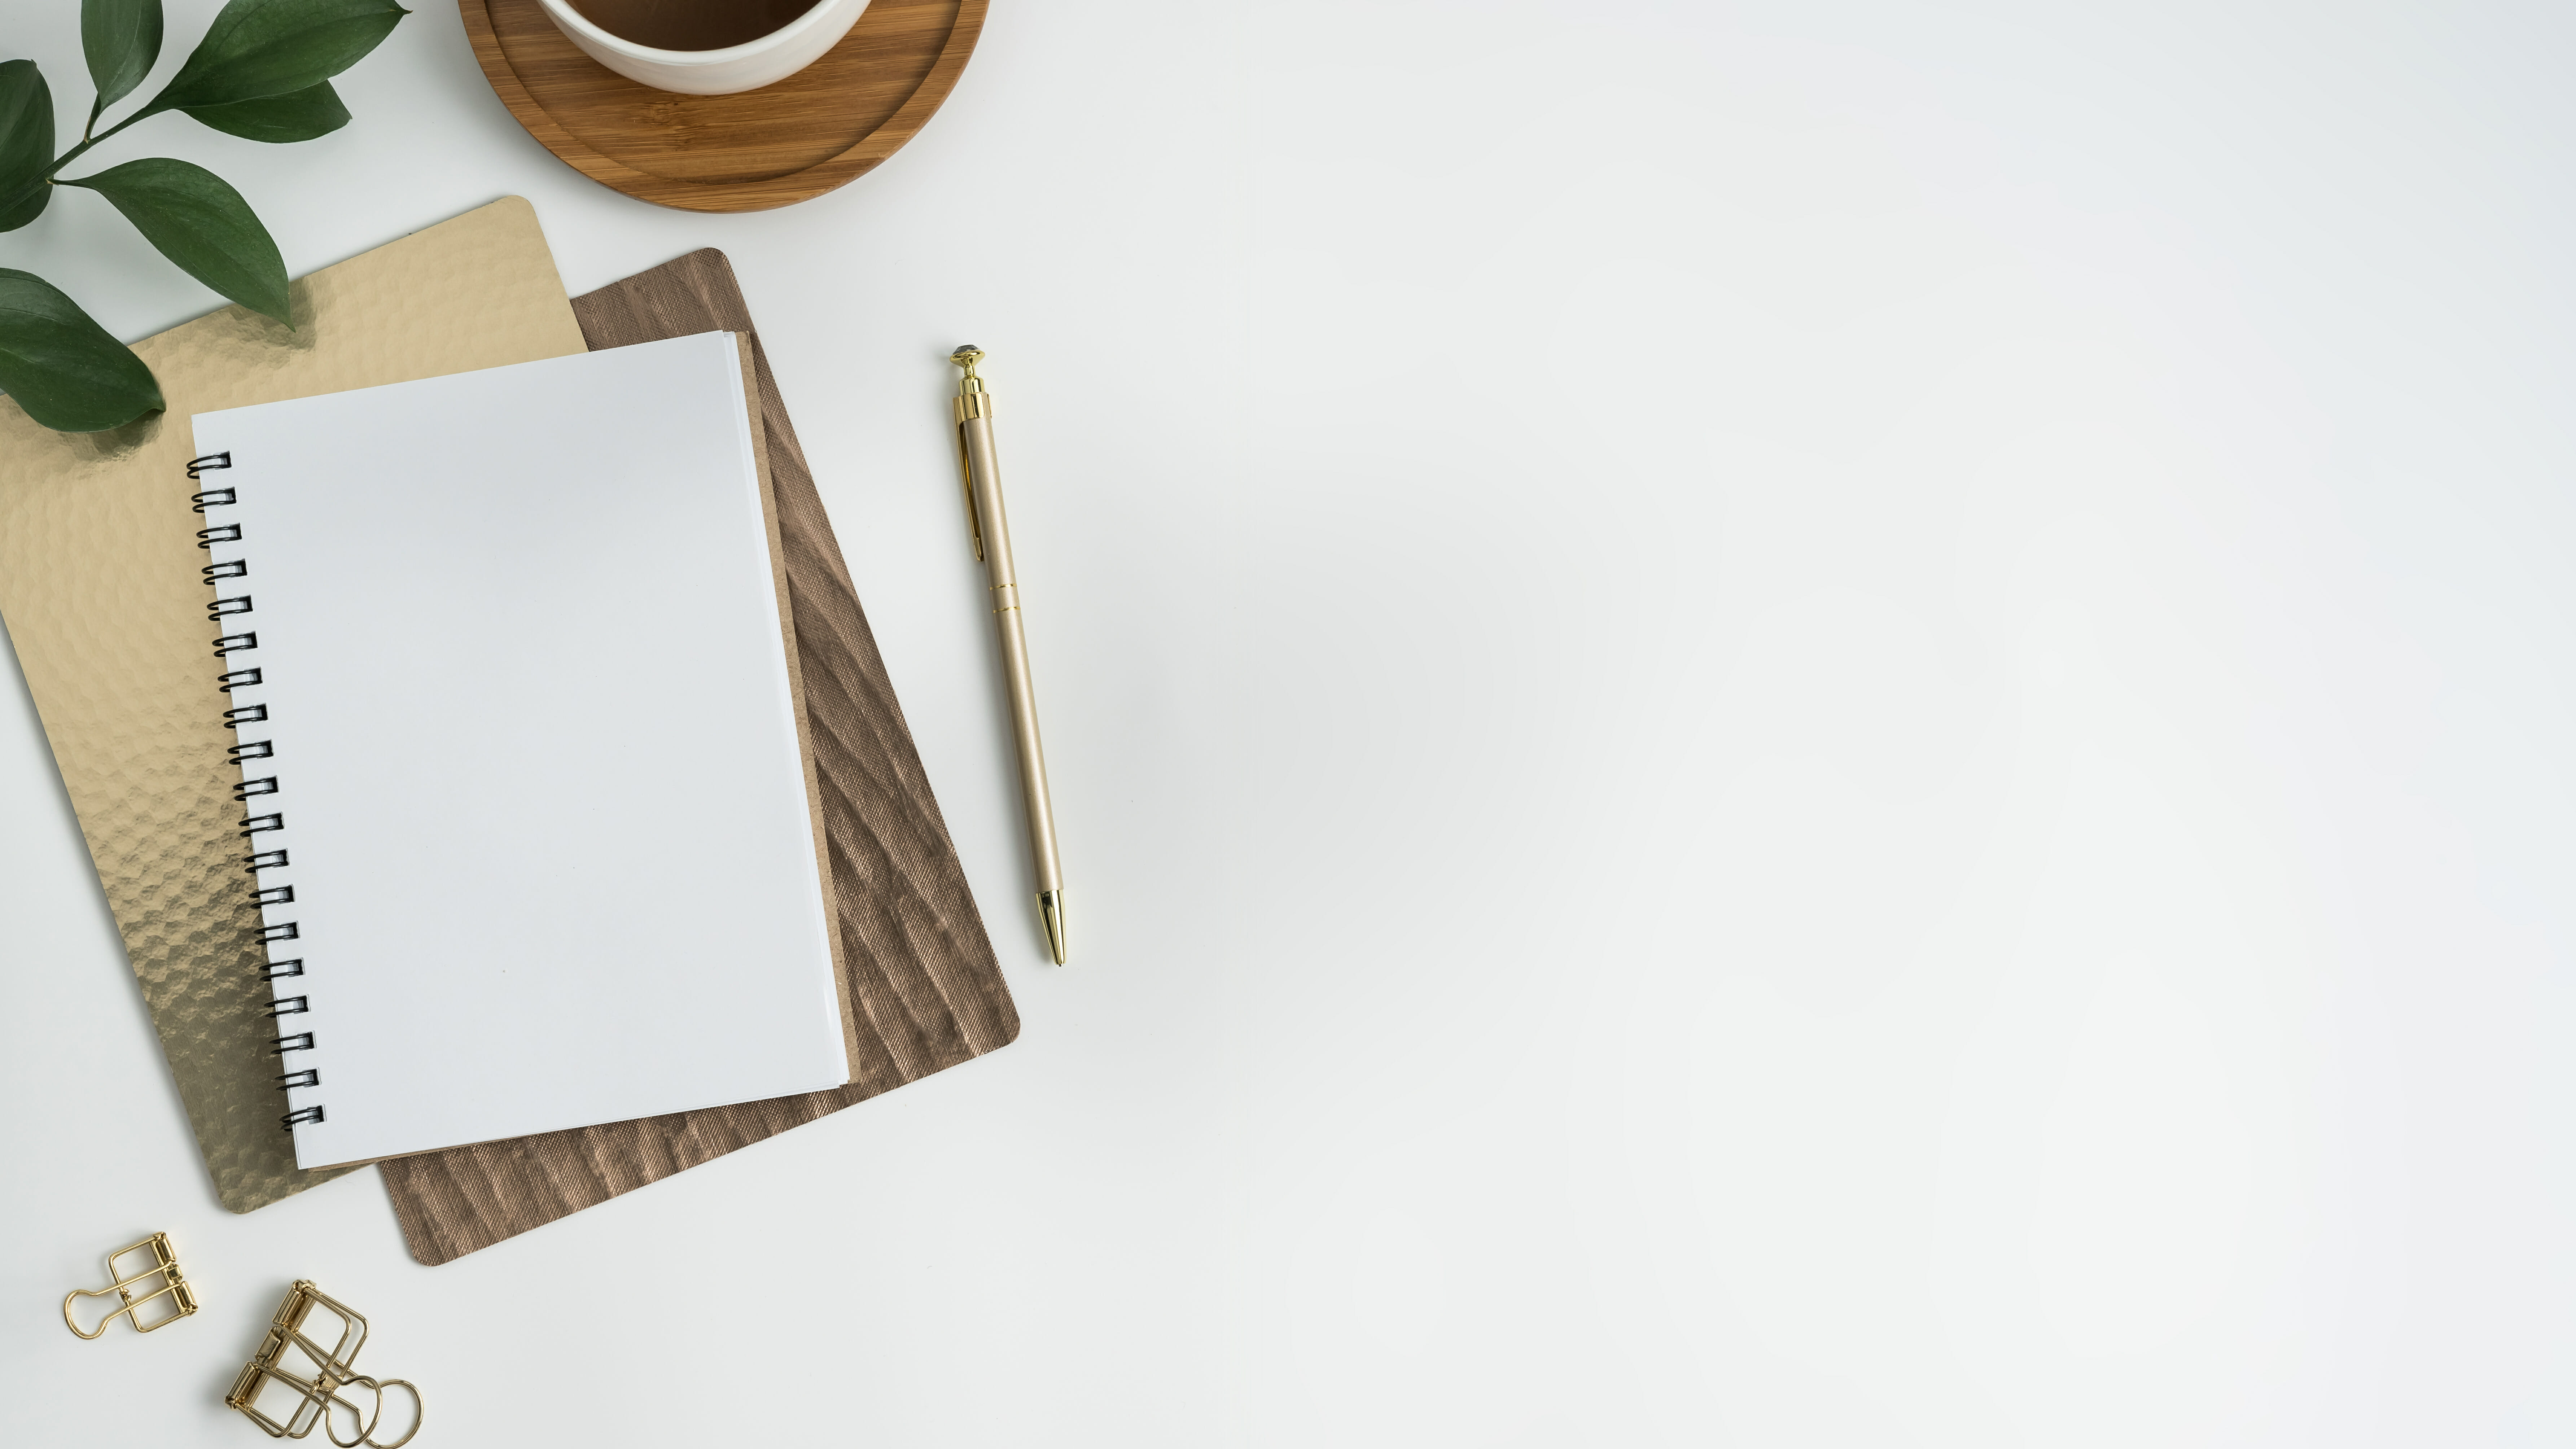 How to write an email pitch: notebook and pen on desk